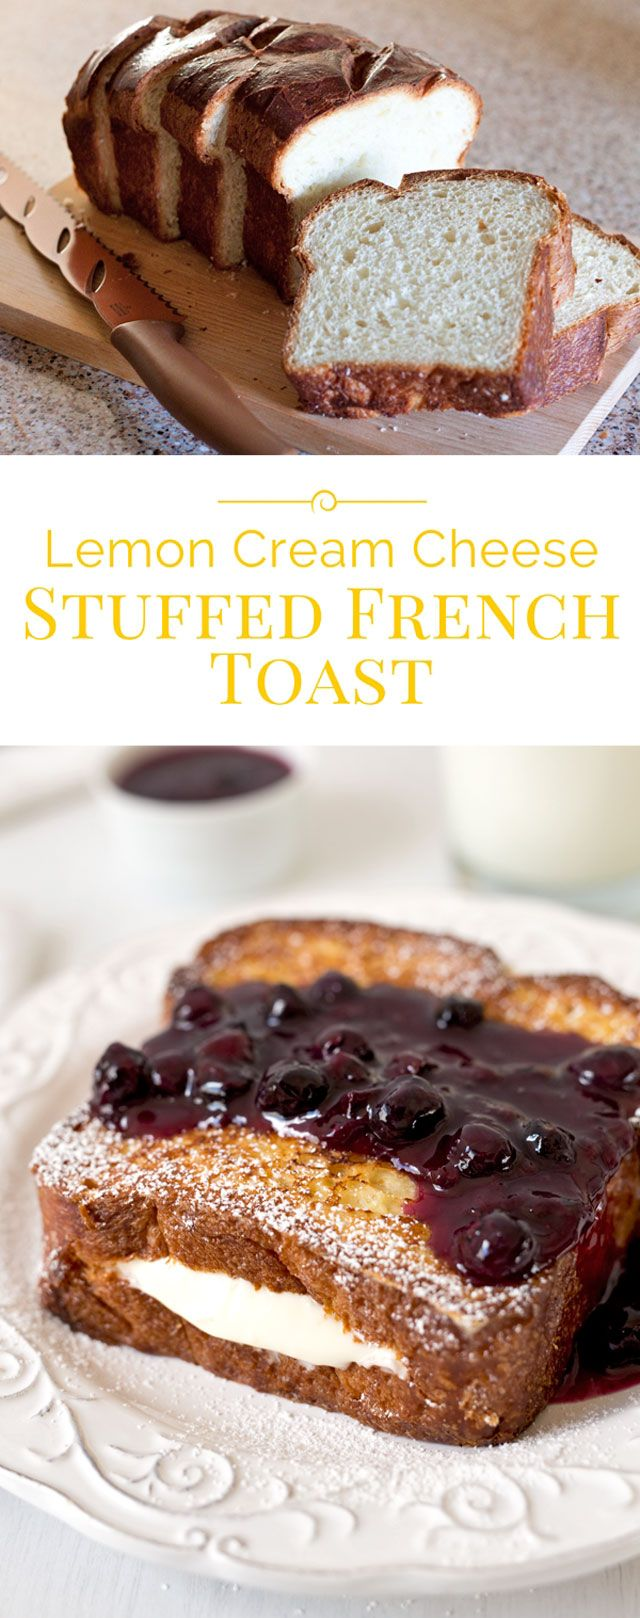 A Decadent, Heavenly Delicious French Toast Filled With A Light, Lemony  Cream Cheese Filling